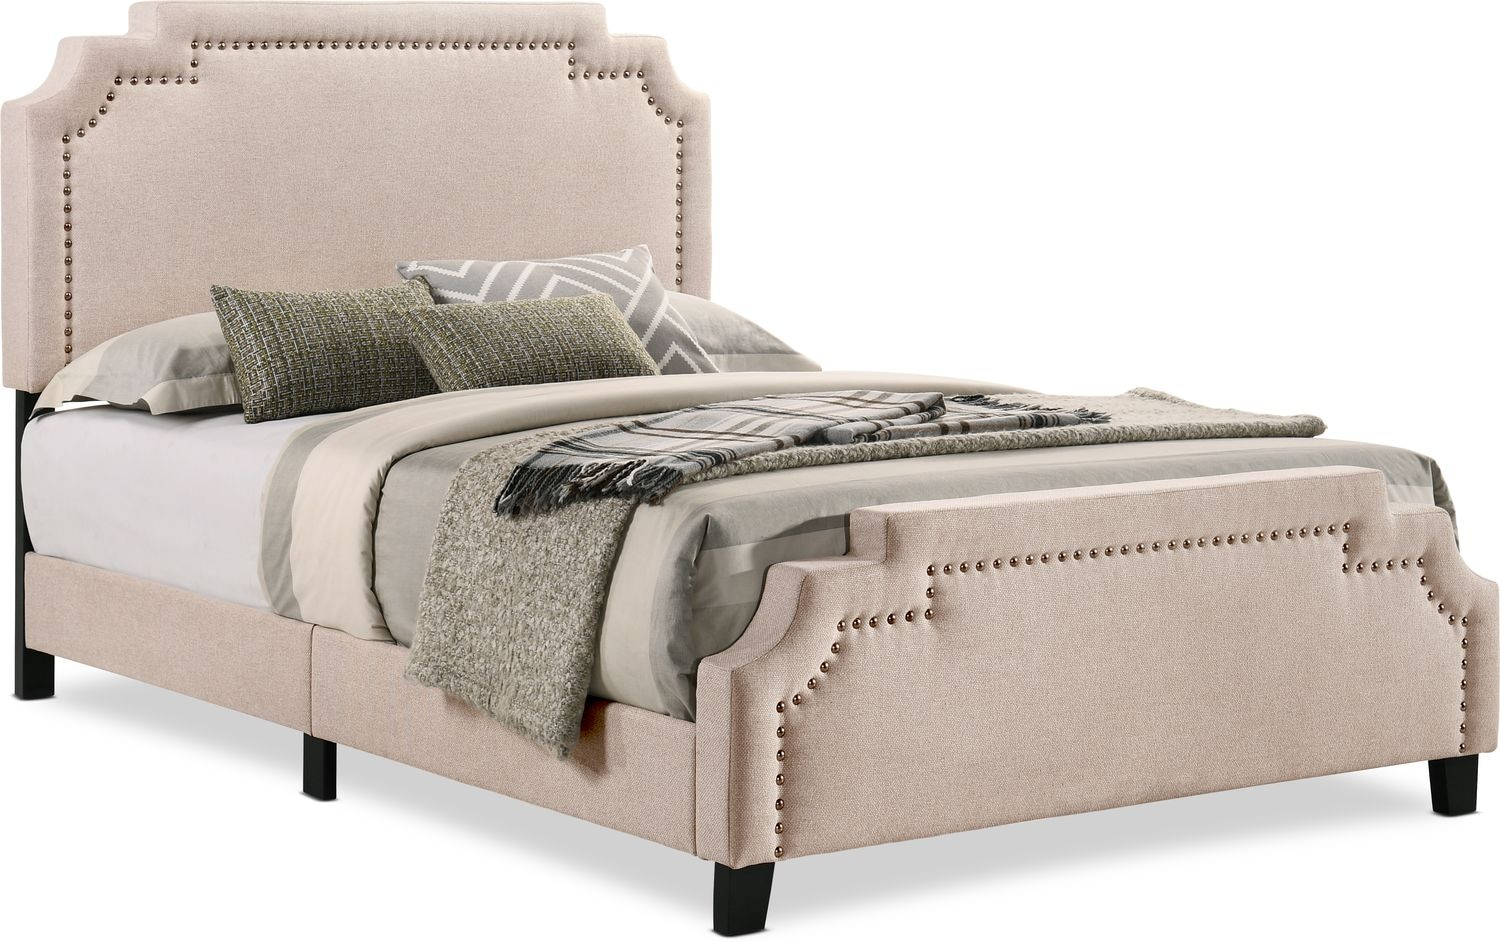 Bedroom Furniture - Drew Upholstered Bed